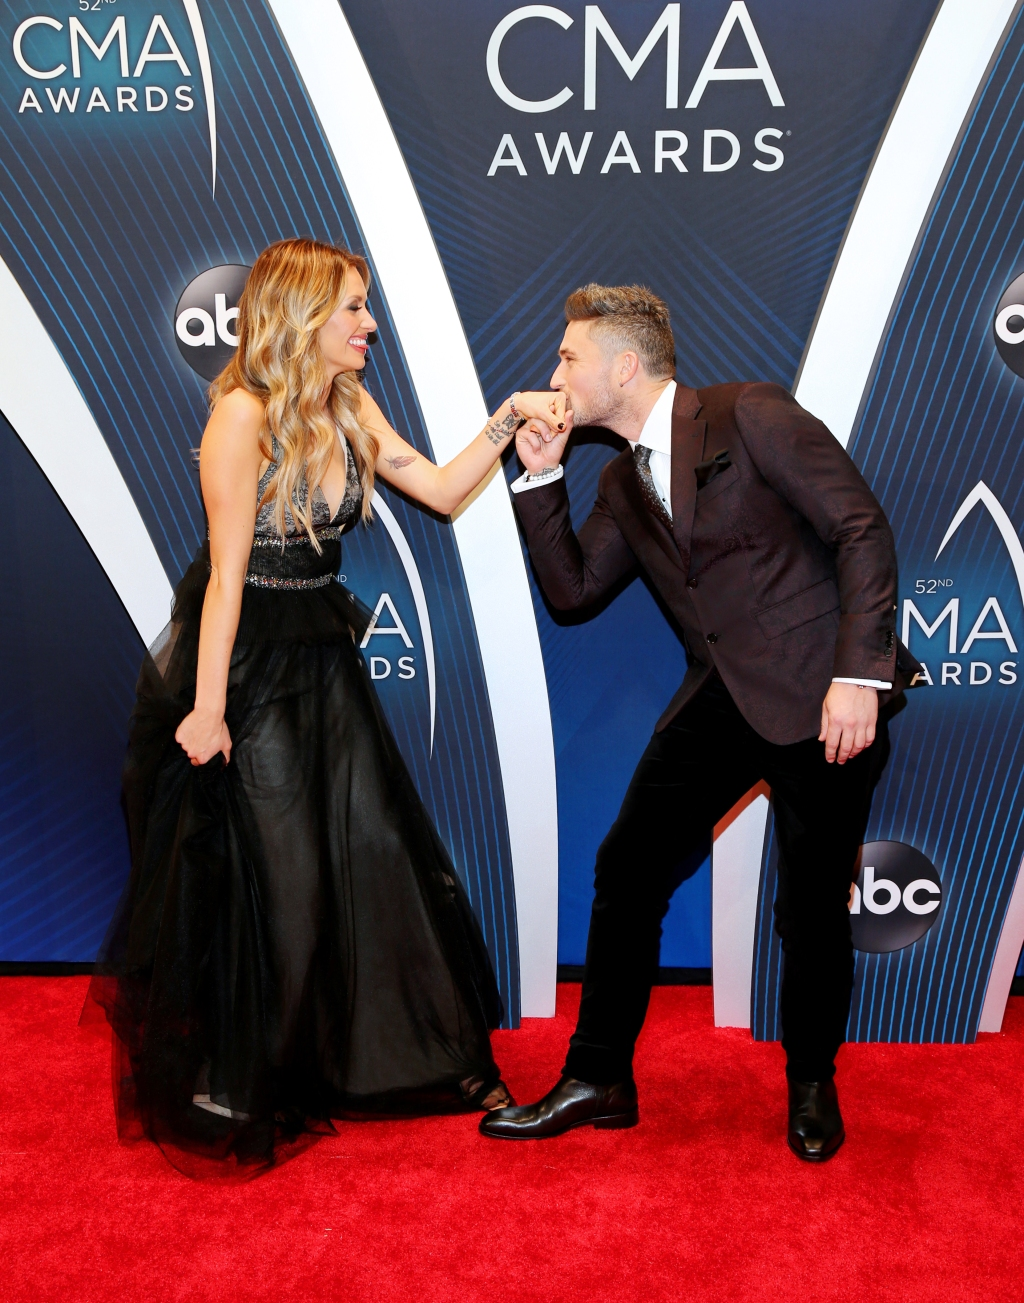 Singers Carly Pearce and Michael Ray, who recently revealed that they are dating, arrived together at the 2018 CMA Awards.